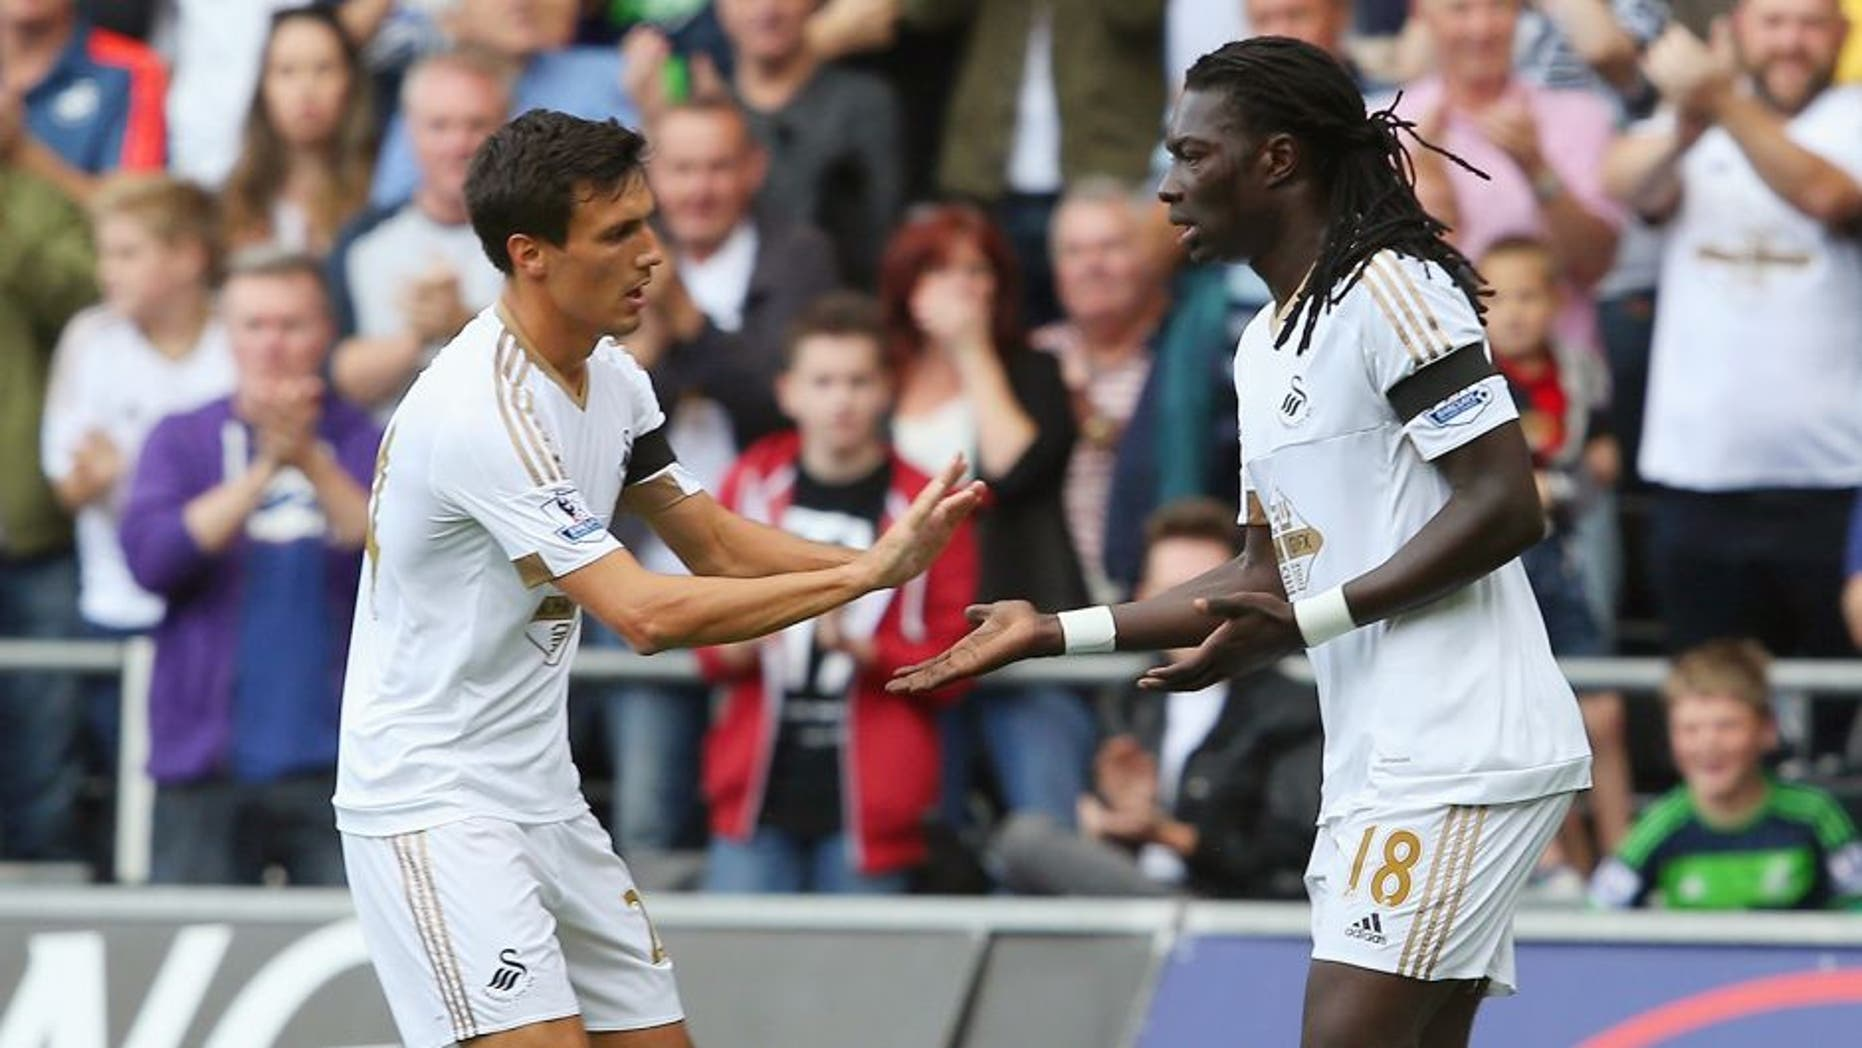 SWANSEA, WALES - AUGUST 15: Bafetimbi Gomis of Swansea City celebrates scoring his team's first goal with his team mate Jack Cork during the Barclays Premier League match between Swansea City and Newcastle United at Liberty Stadium on August 15, 2015 in Swansea, United Kingdom. (Photo by Jan Kruger/Getty Images)